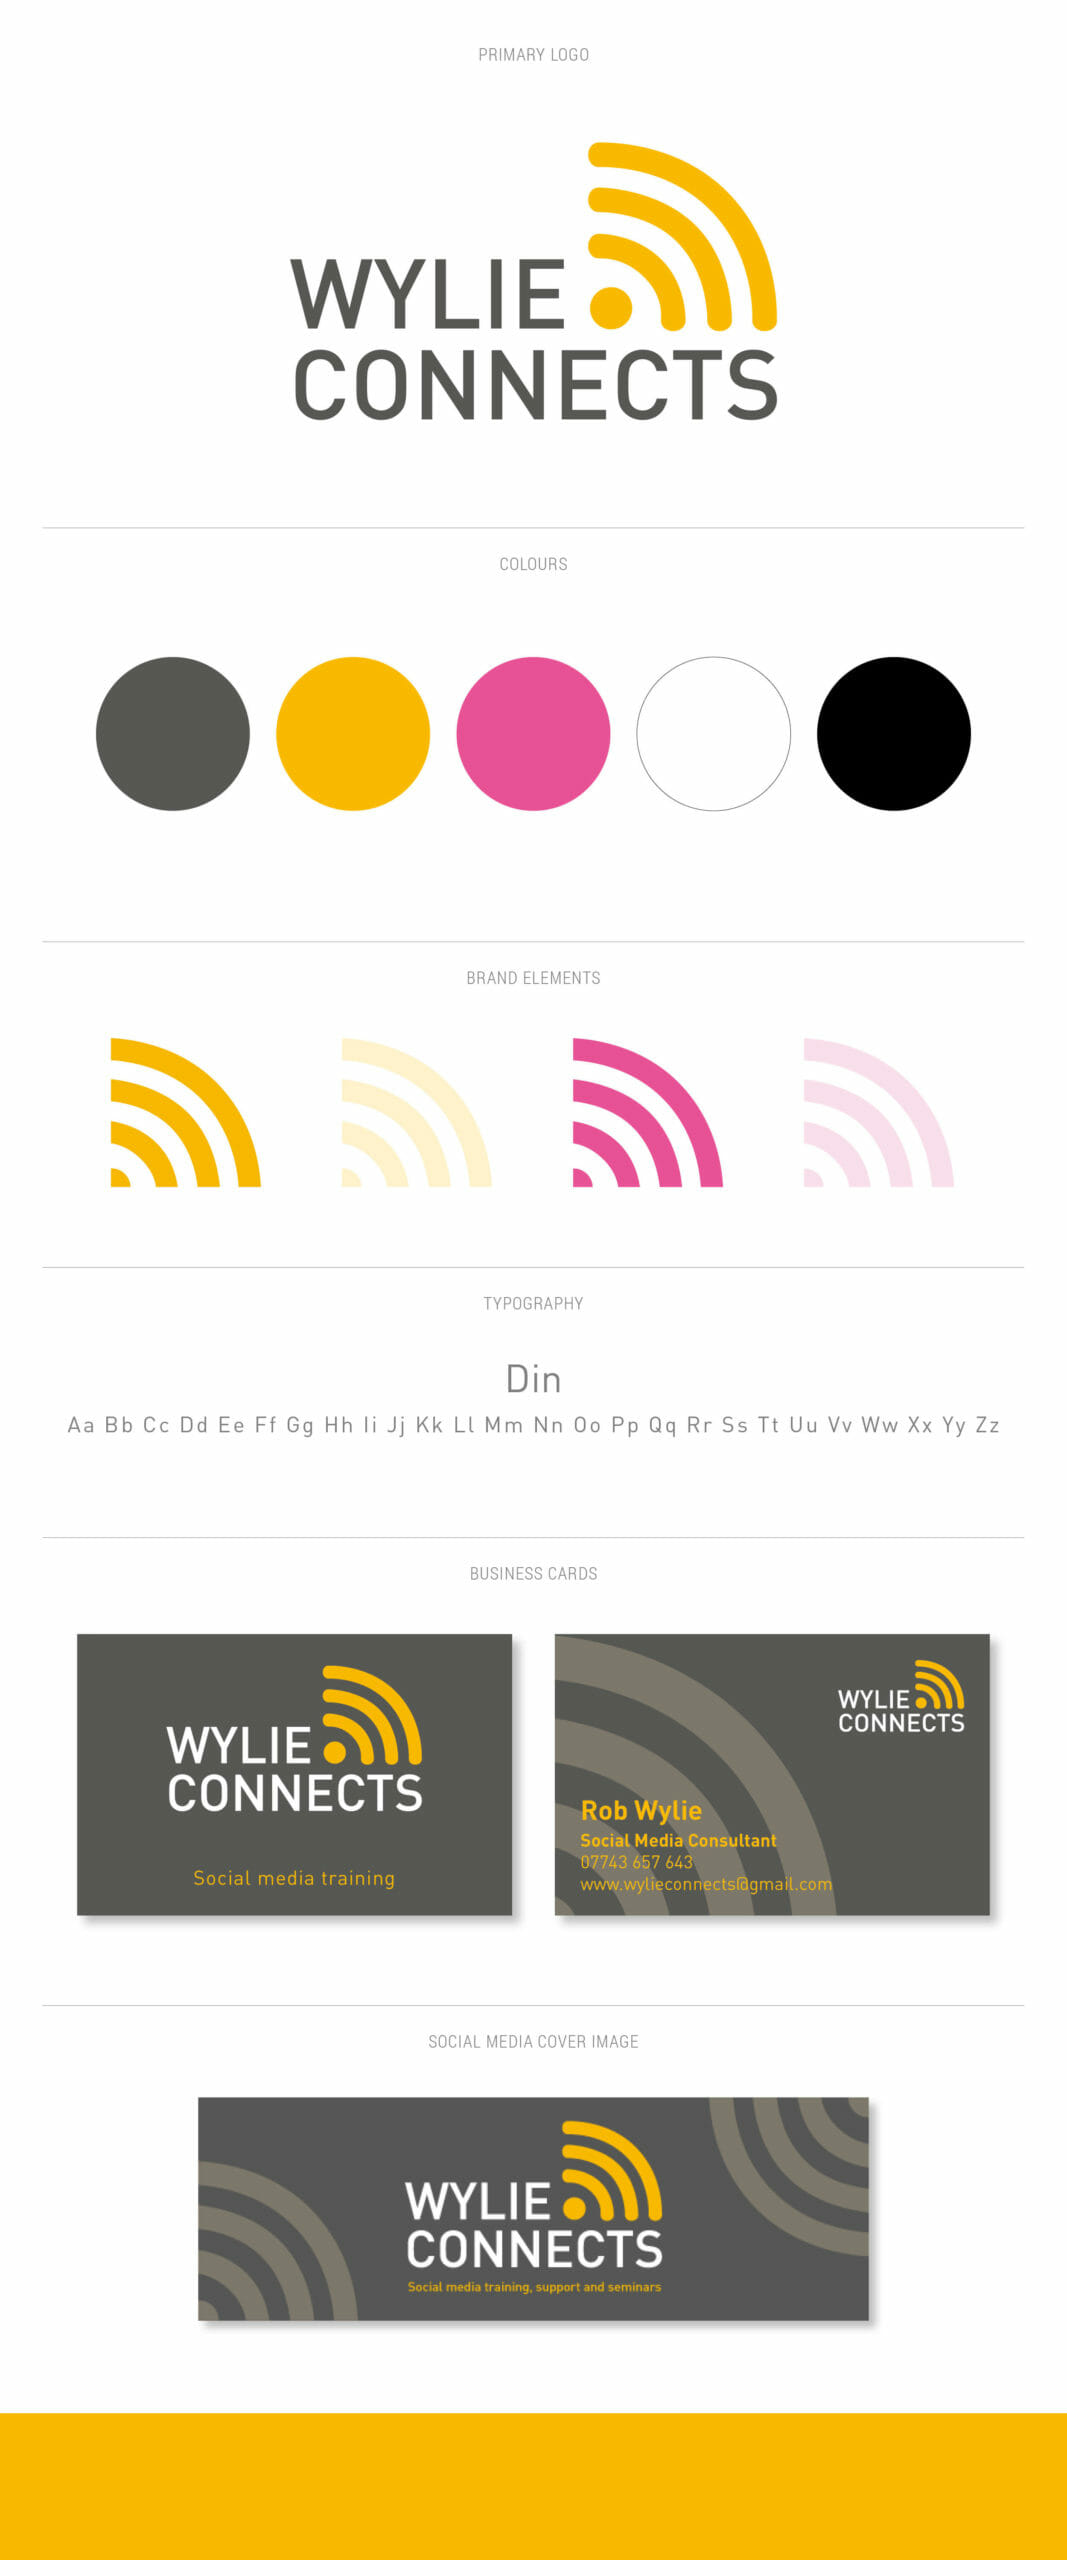 Wylie Connects brand board